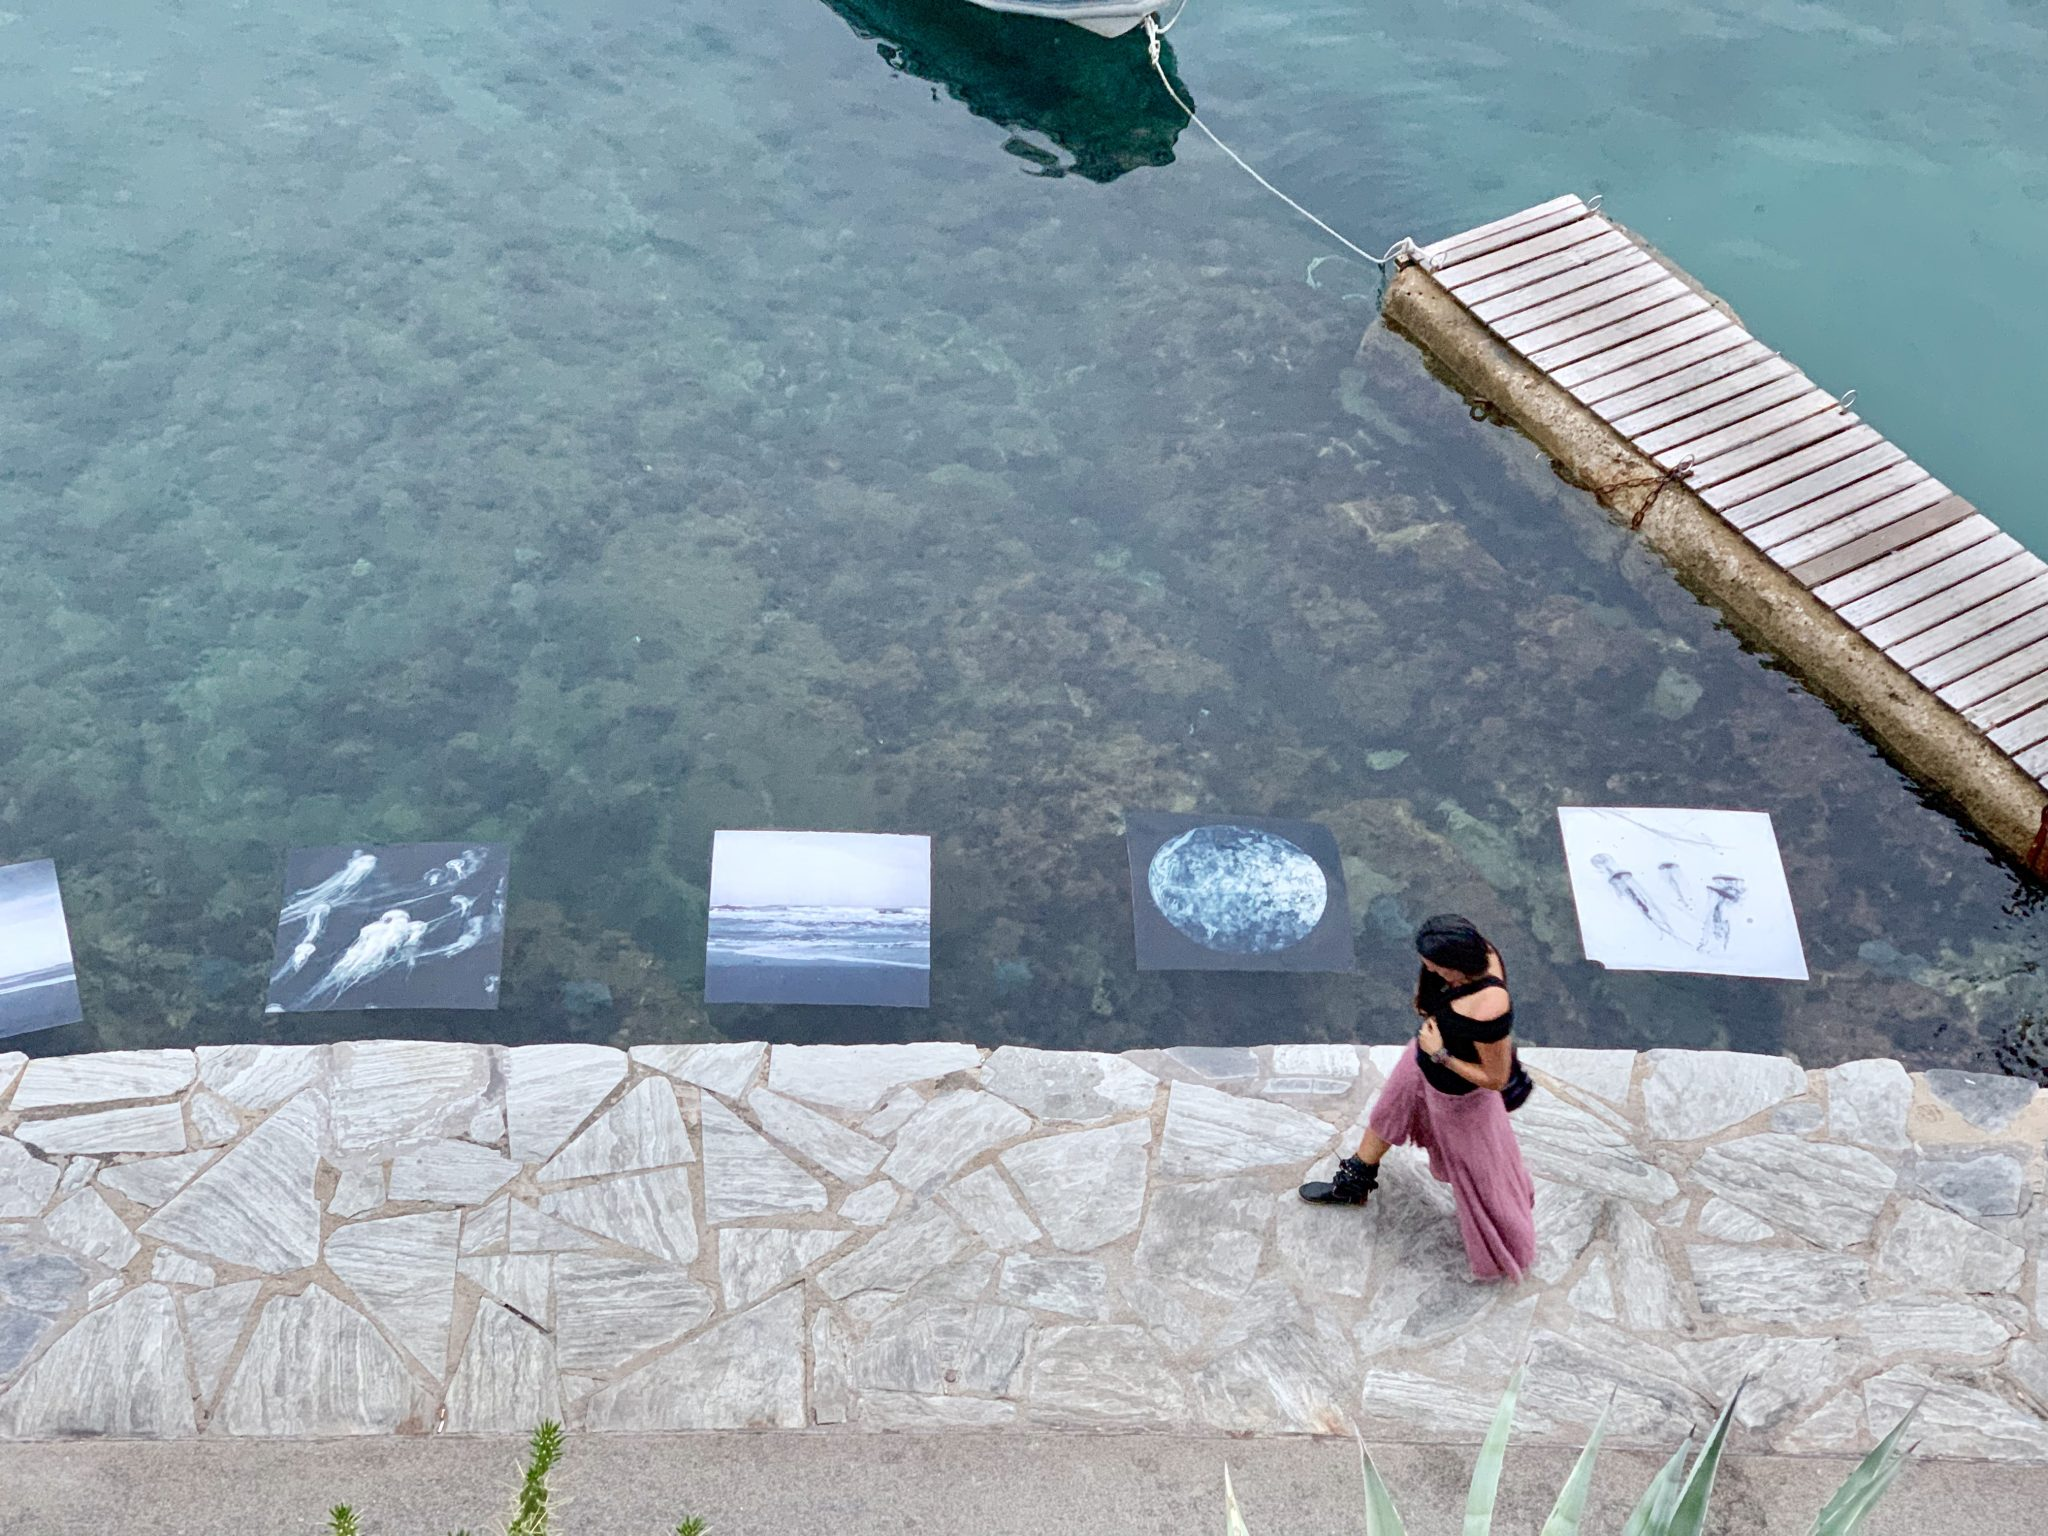 Woman walking past photography prints suspended in the sea as part of an art exhibit.